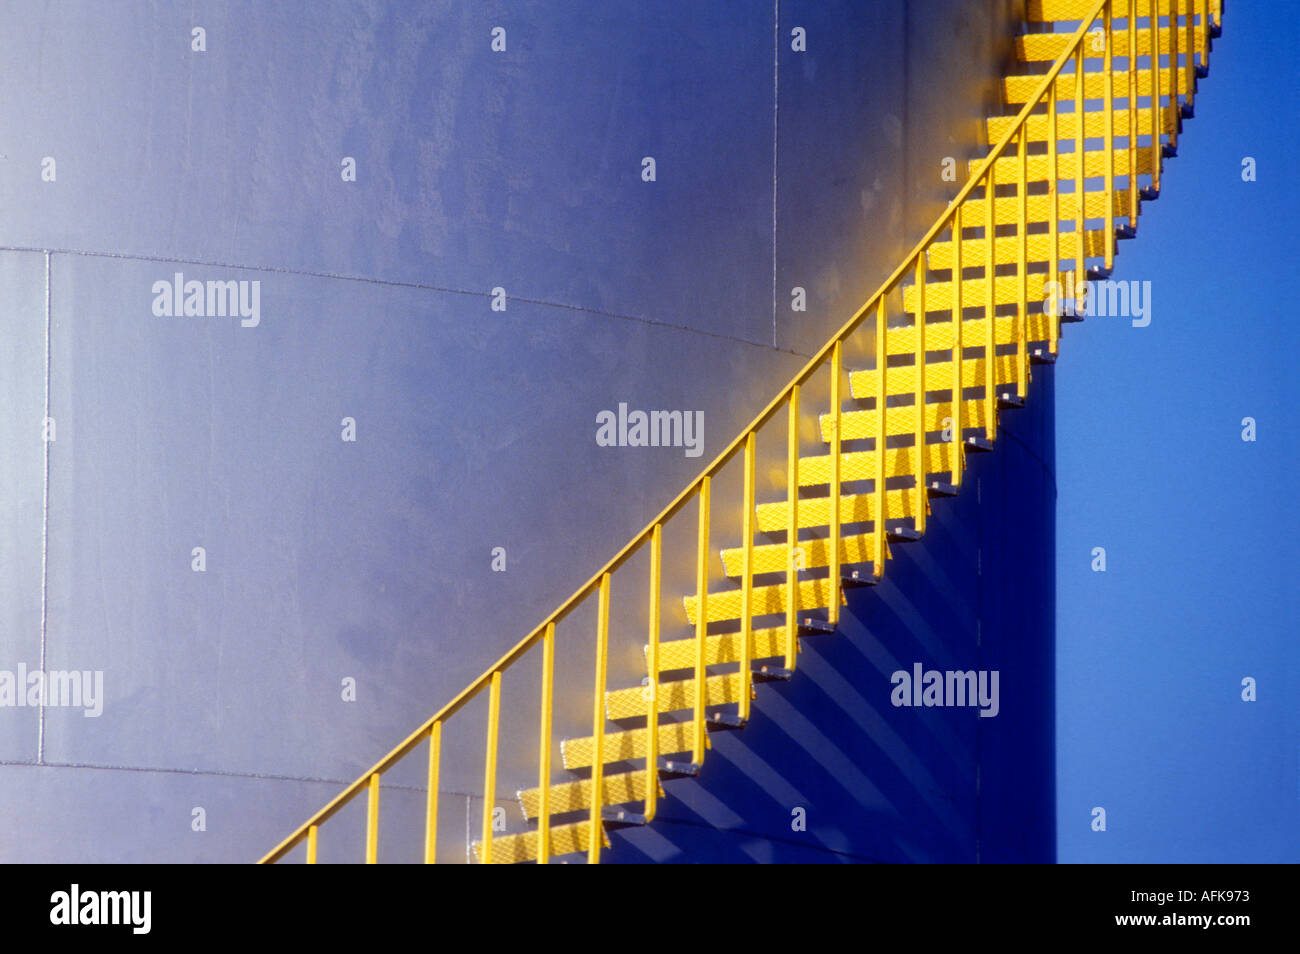 Yellow stairs on side of large petroleum storage tank - Stock Image